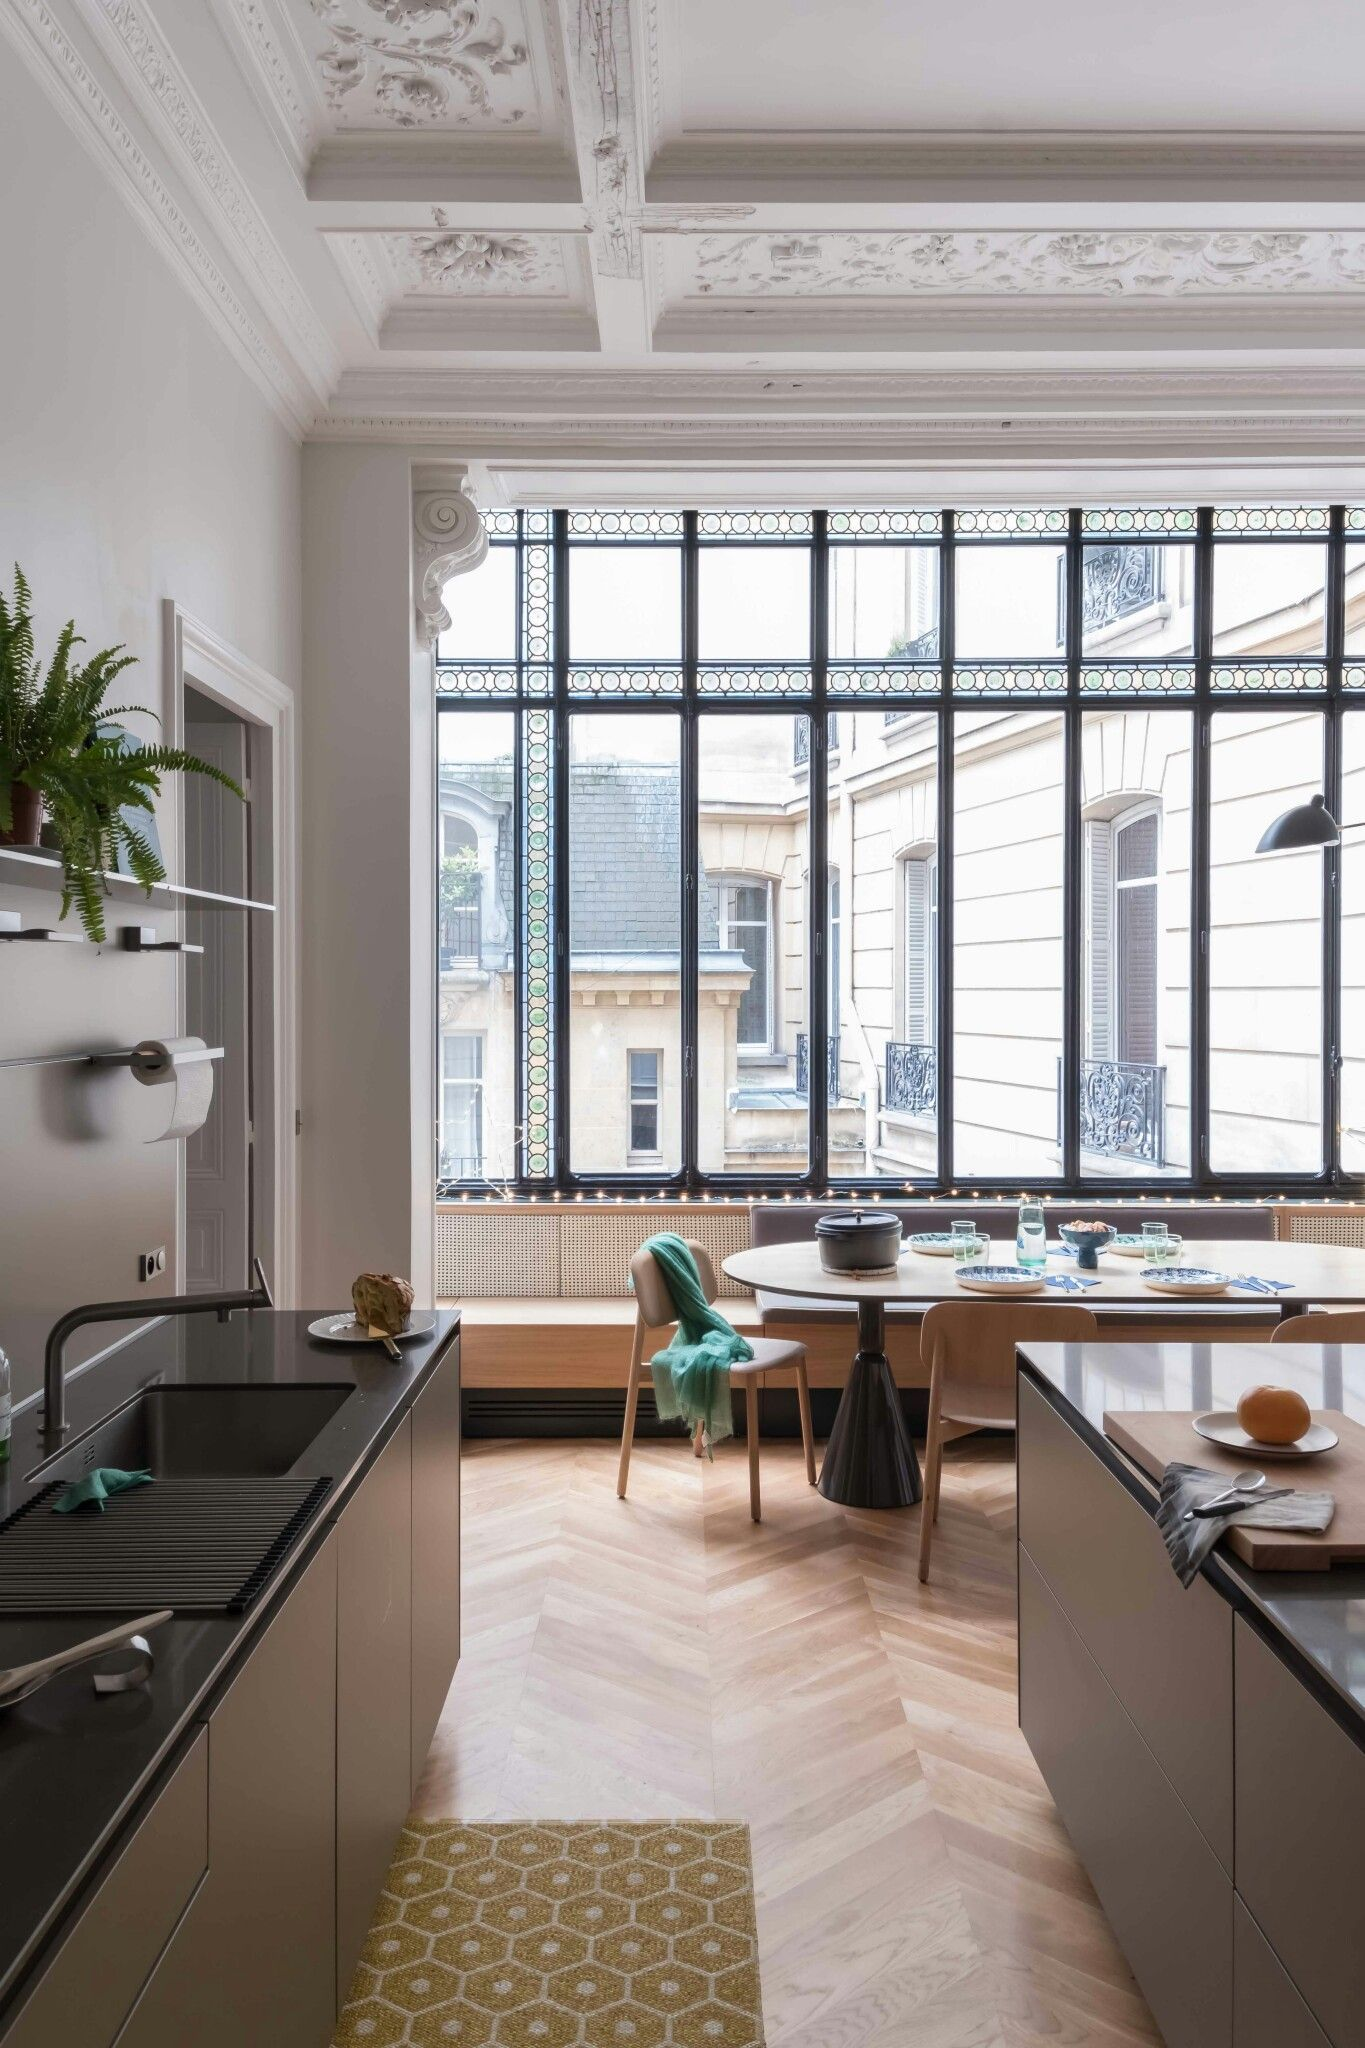 Captivating Simple Tips For Kitchen Frames And Decorations